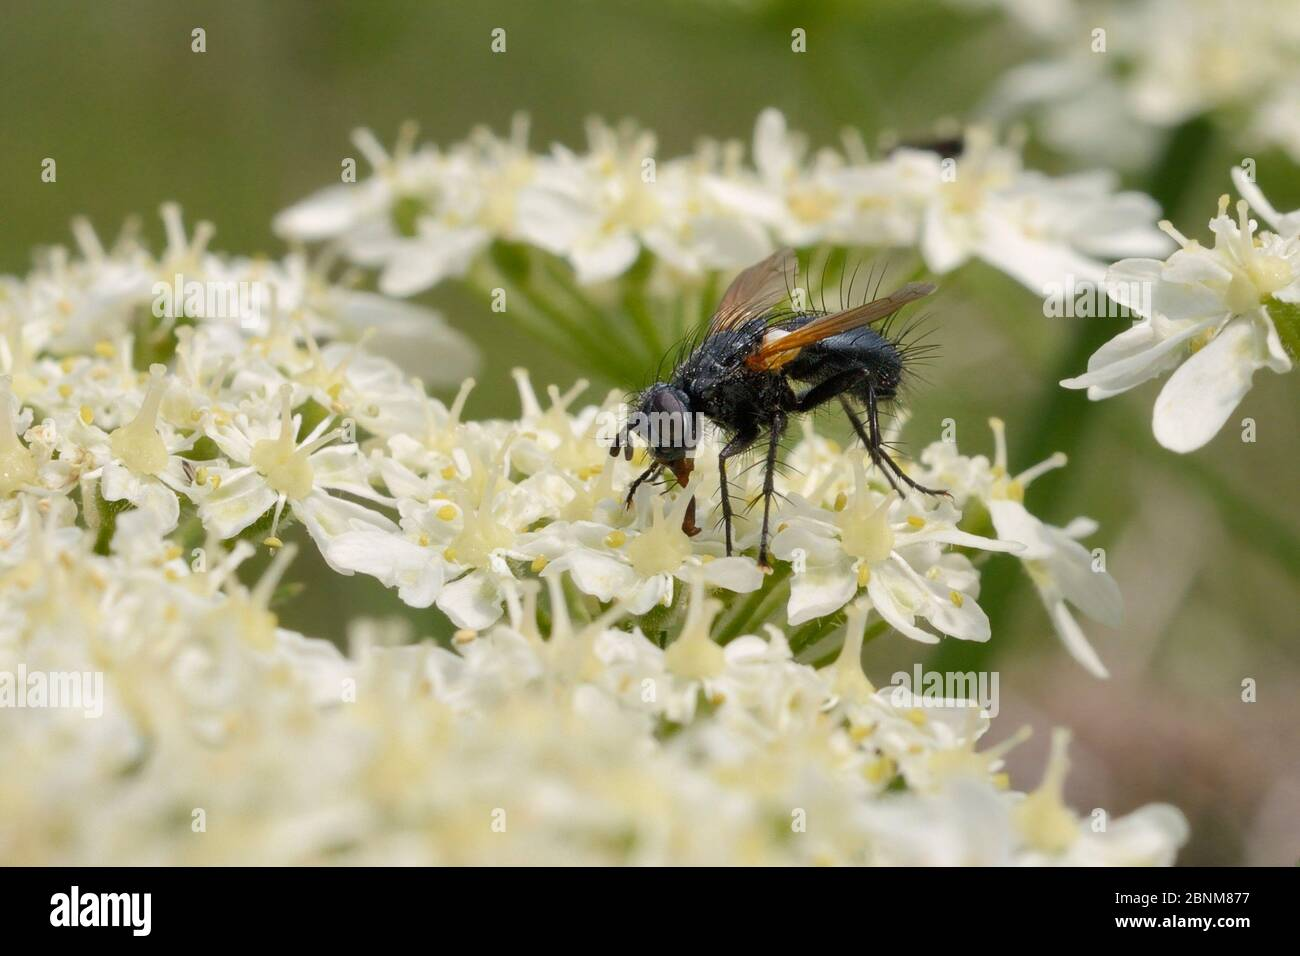 Parasite fly / Tachinid fly (Zophomyia temula), a nationally scarce species, feeding on Common hogweed (Heracleum sphondylium) on grassland meadow cle Stock Photo